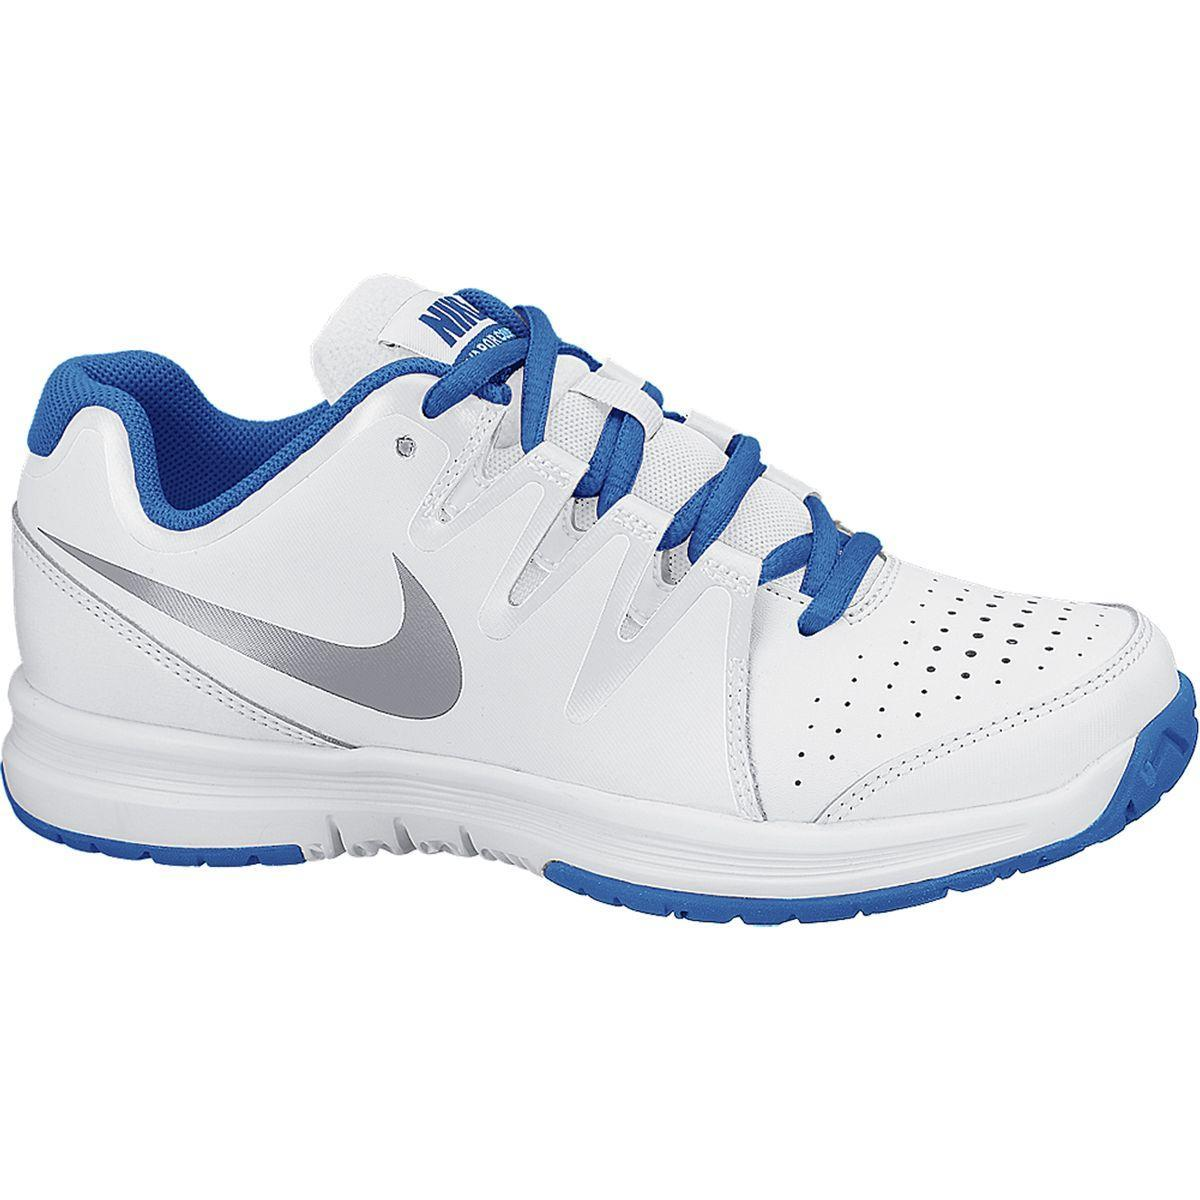 Boys Tennis Court Shoes